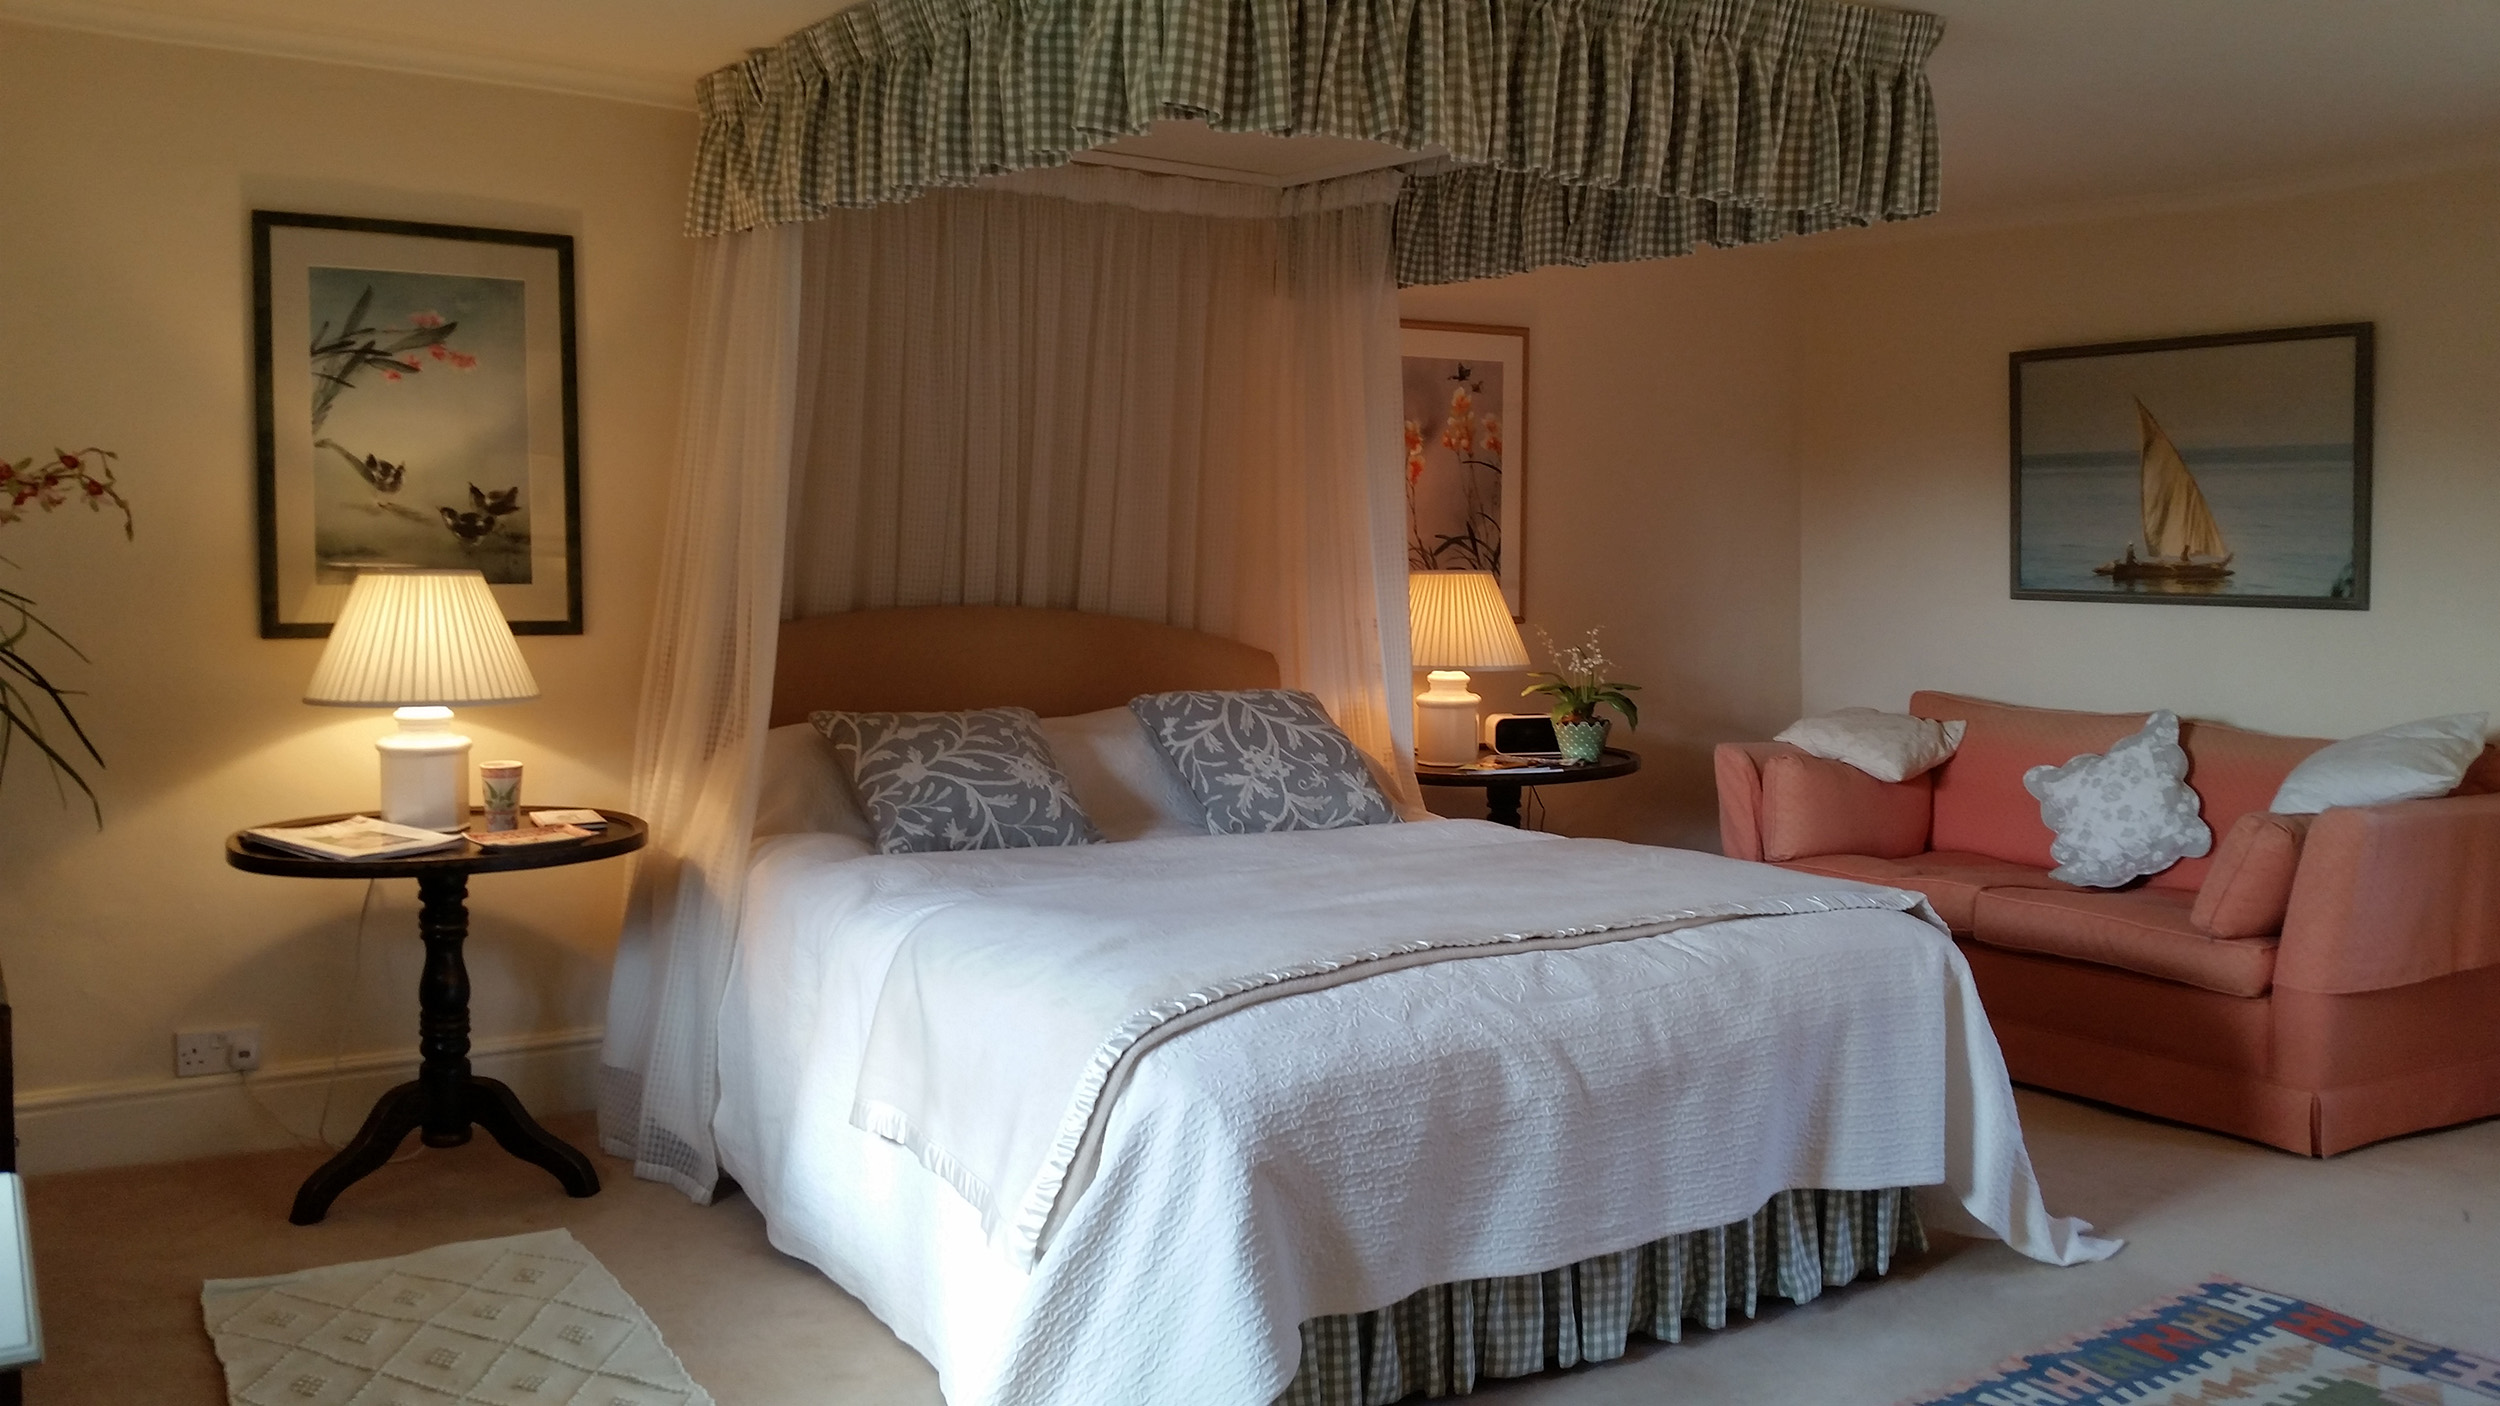 House - There are three elegant bedrooms in the main house, all with modern bathrooms. Every comfortable room comes complete with decorative touches collected during the family's travels across the globe.